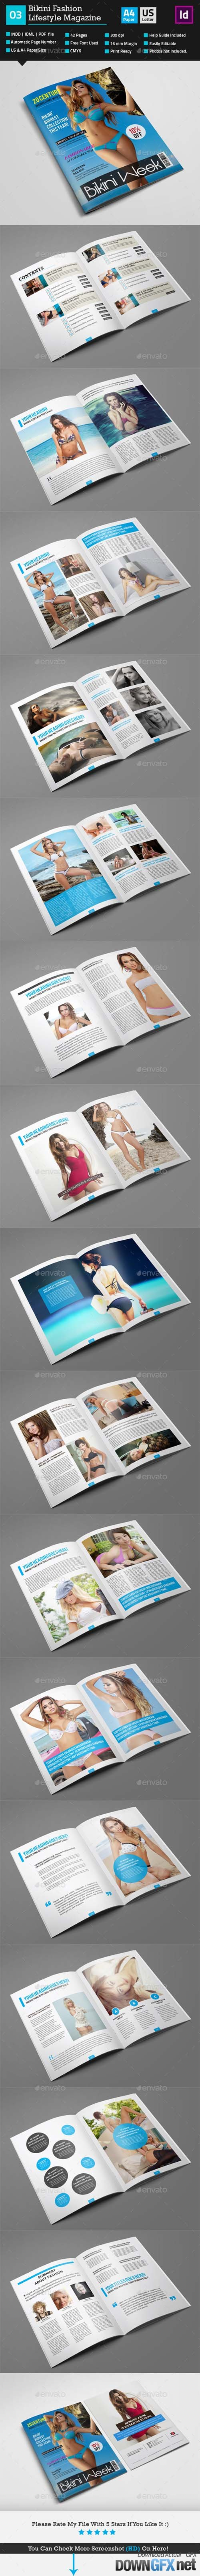 Bikini Magazine Template_Indesign 42 Pages_V3 10365955